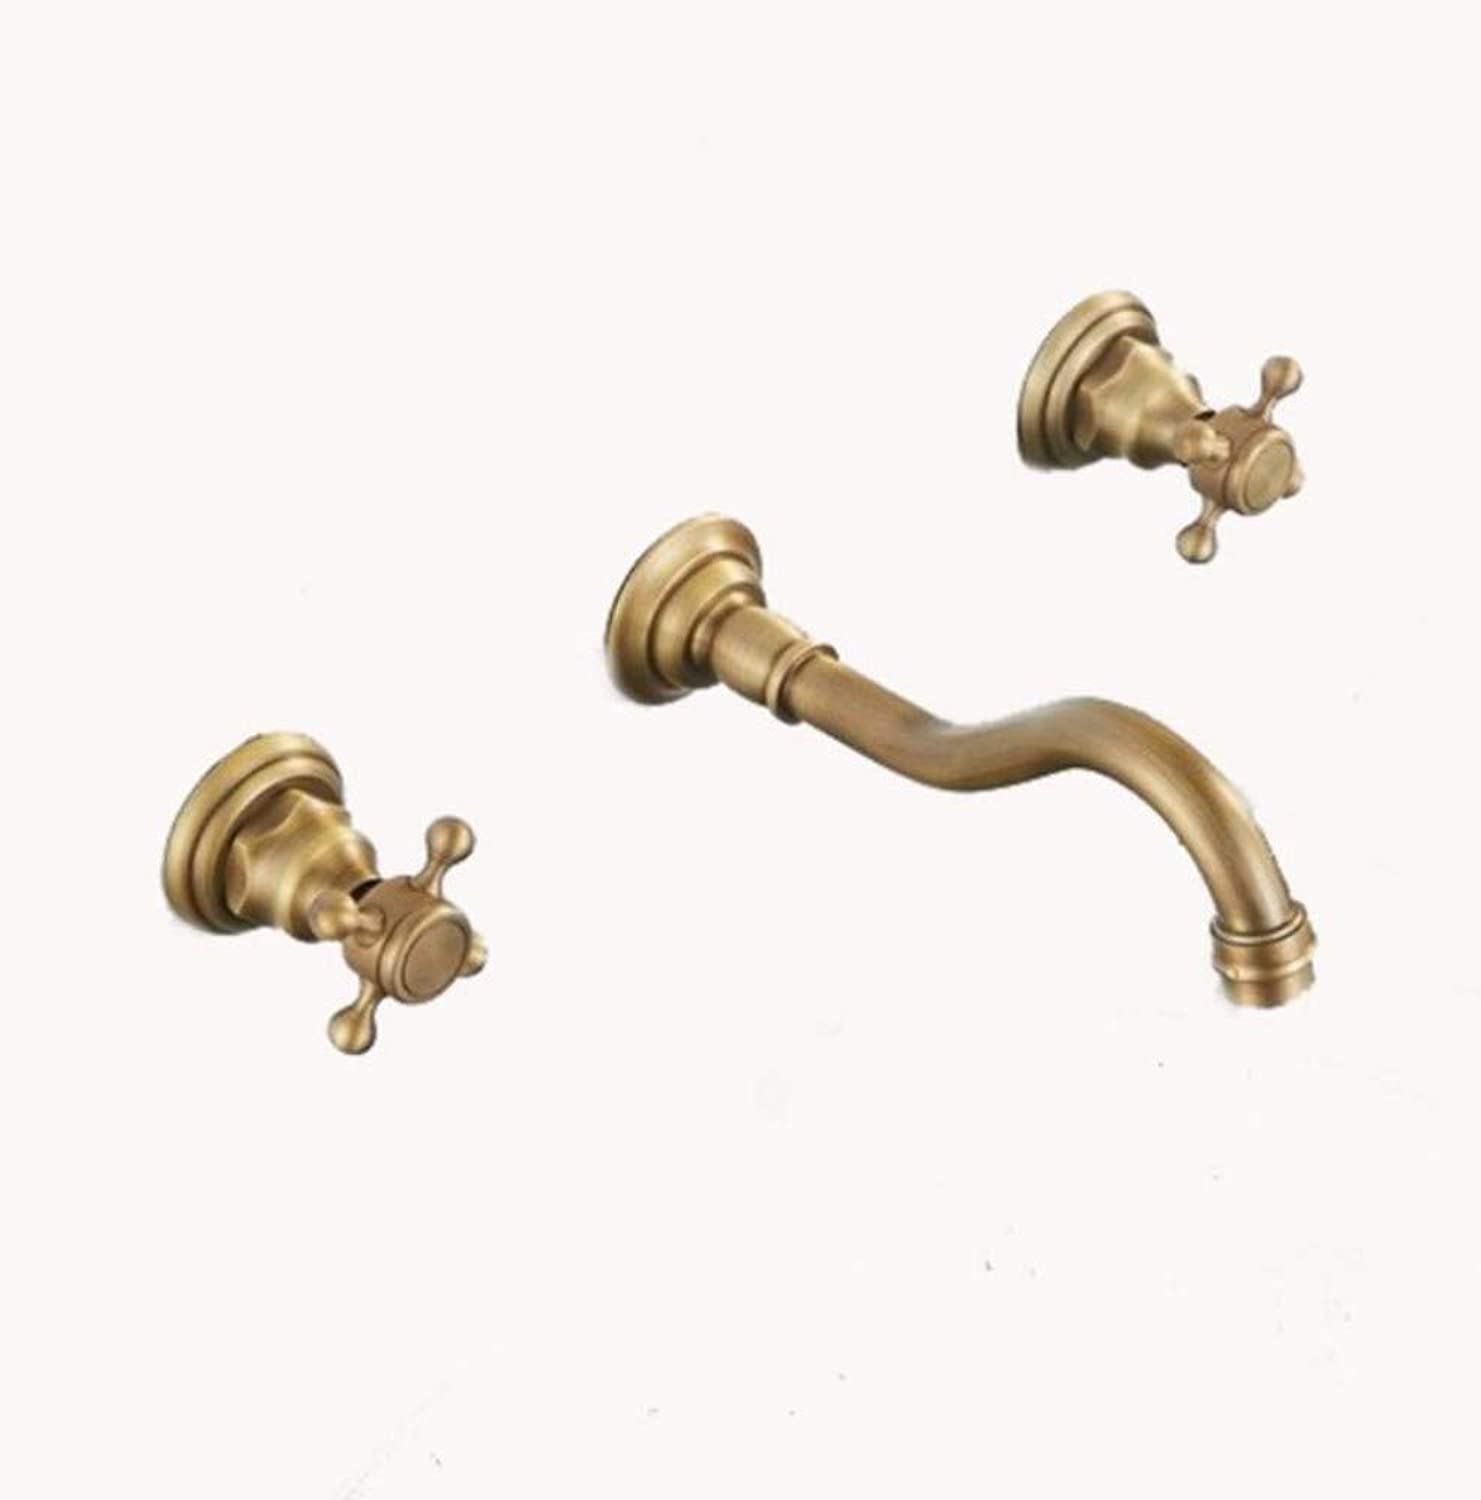 Bathroom Sink Basin Lever Mixer Tap Hydraulic Hardware European-Style Ancient-Style Three-Hole Three-Piece Set Separate Facebasin Faucet